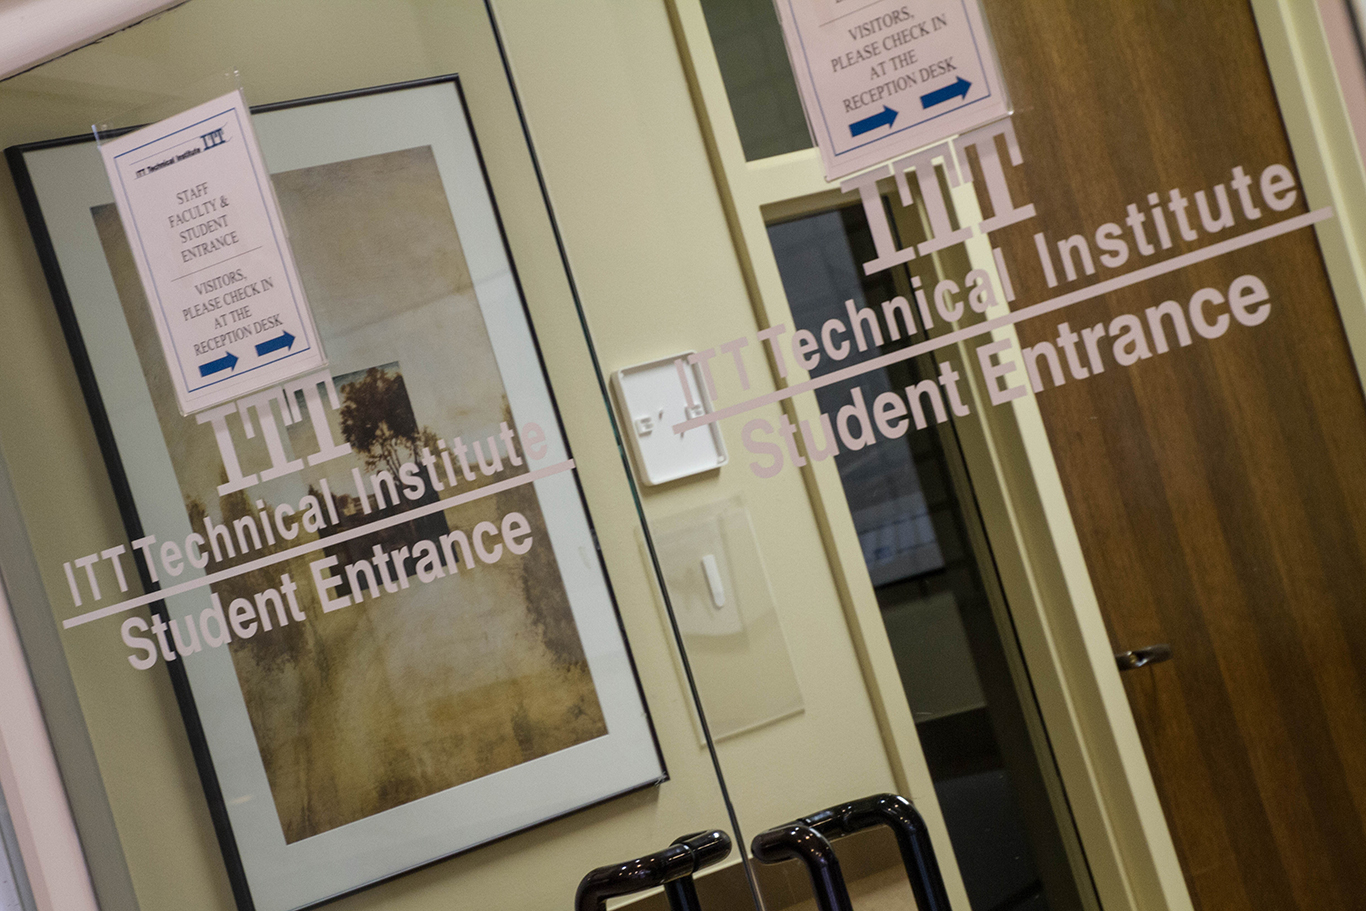 Students left to question their options after ITT Tech suddenly closes its doors